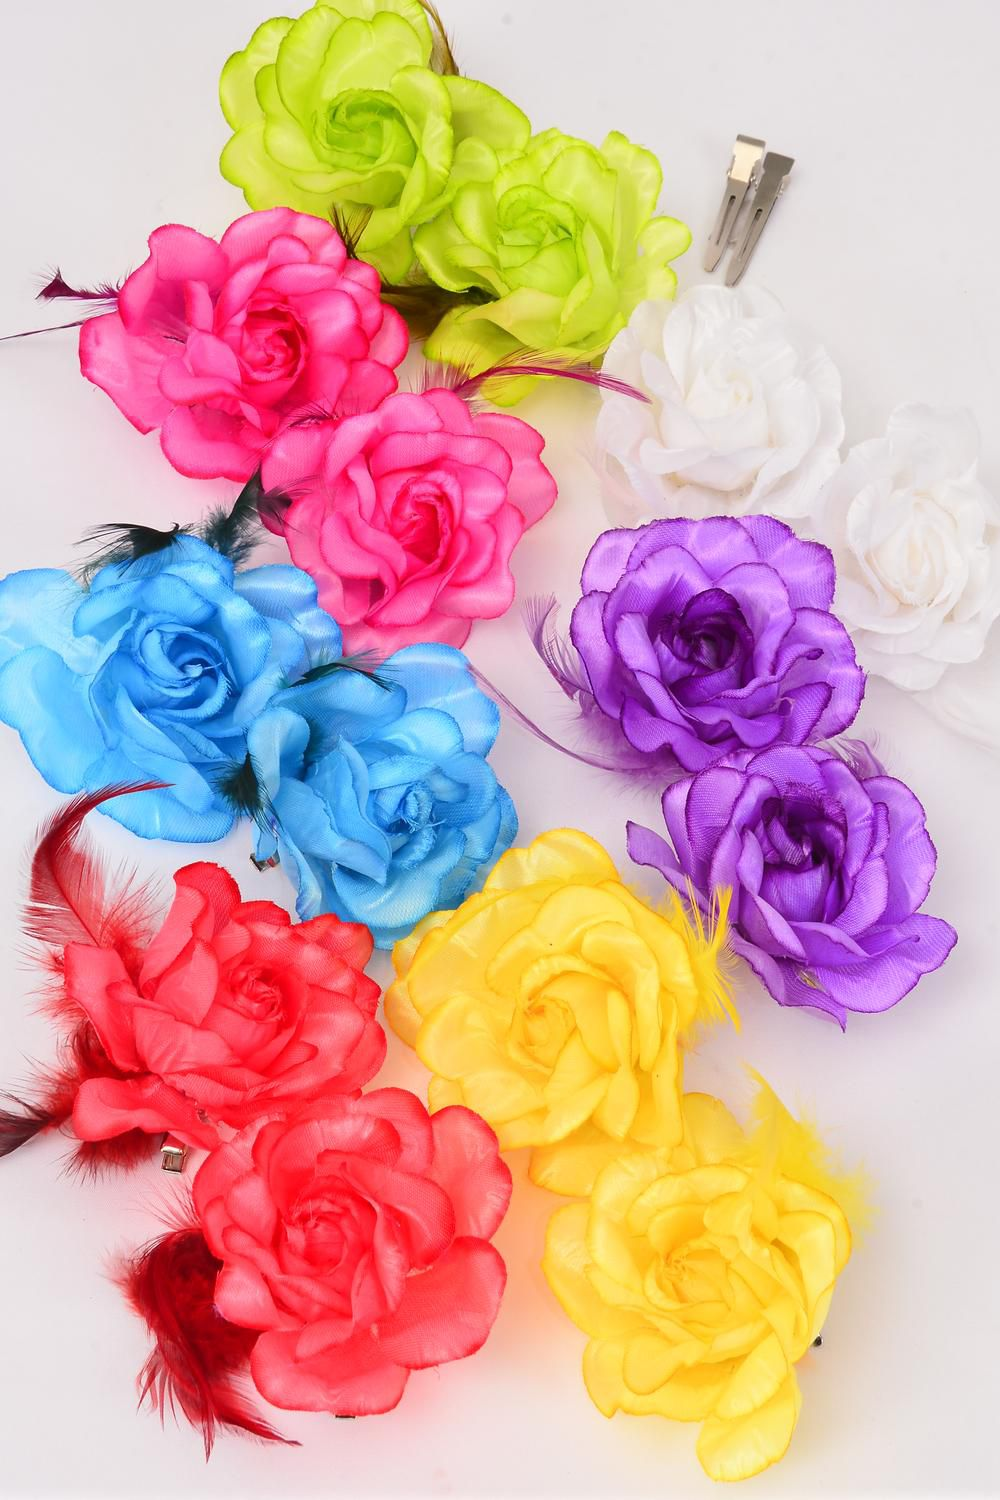 "Flowers 24 pcs Rose & Feathers Citrus Alligator Clip /DZ **Citrus** Alligator Clip,Flower Size-2.75"" Wide,2 Fuchsia,2 Purple,2 White,2 Yellow,1 Red,1 Blue,1 Orange,1 Lime,8 Color Asst"